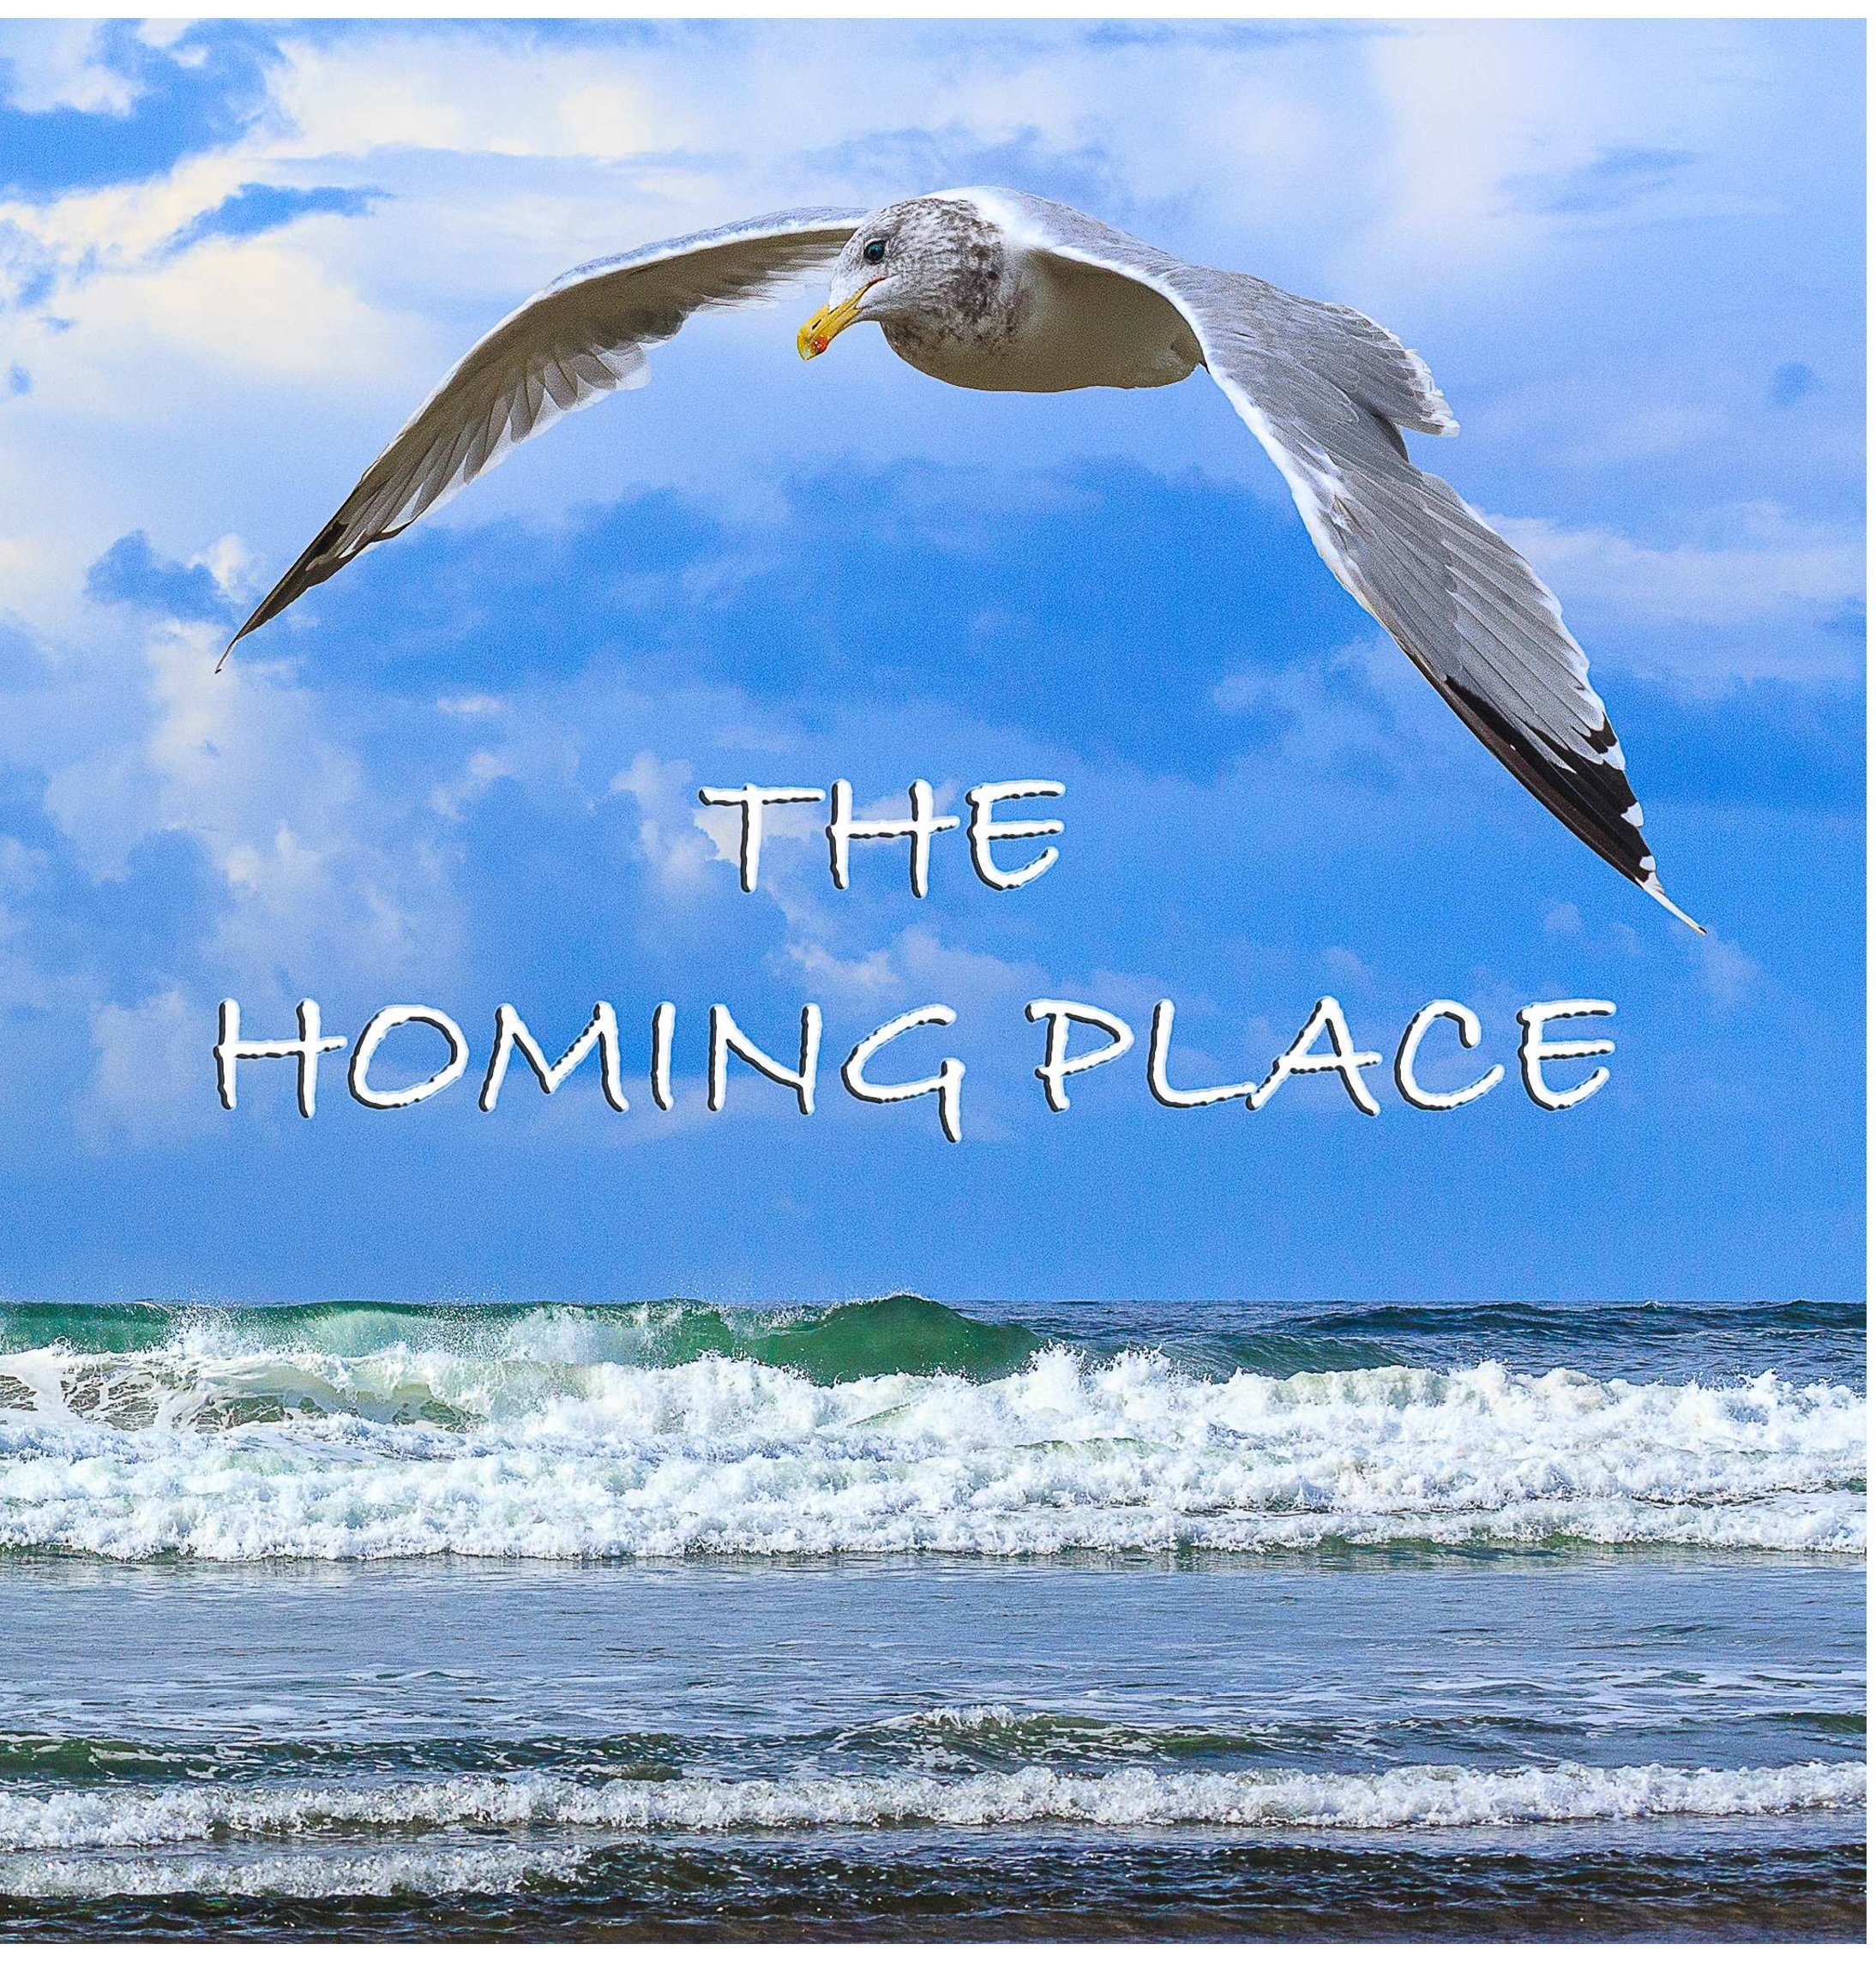 The Homing Place